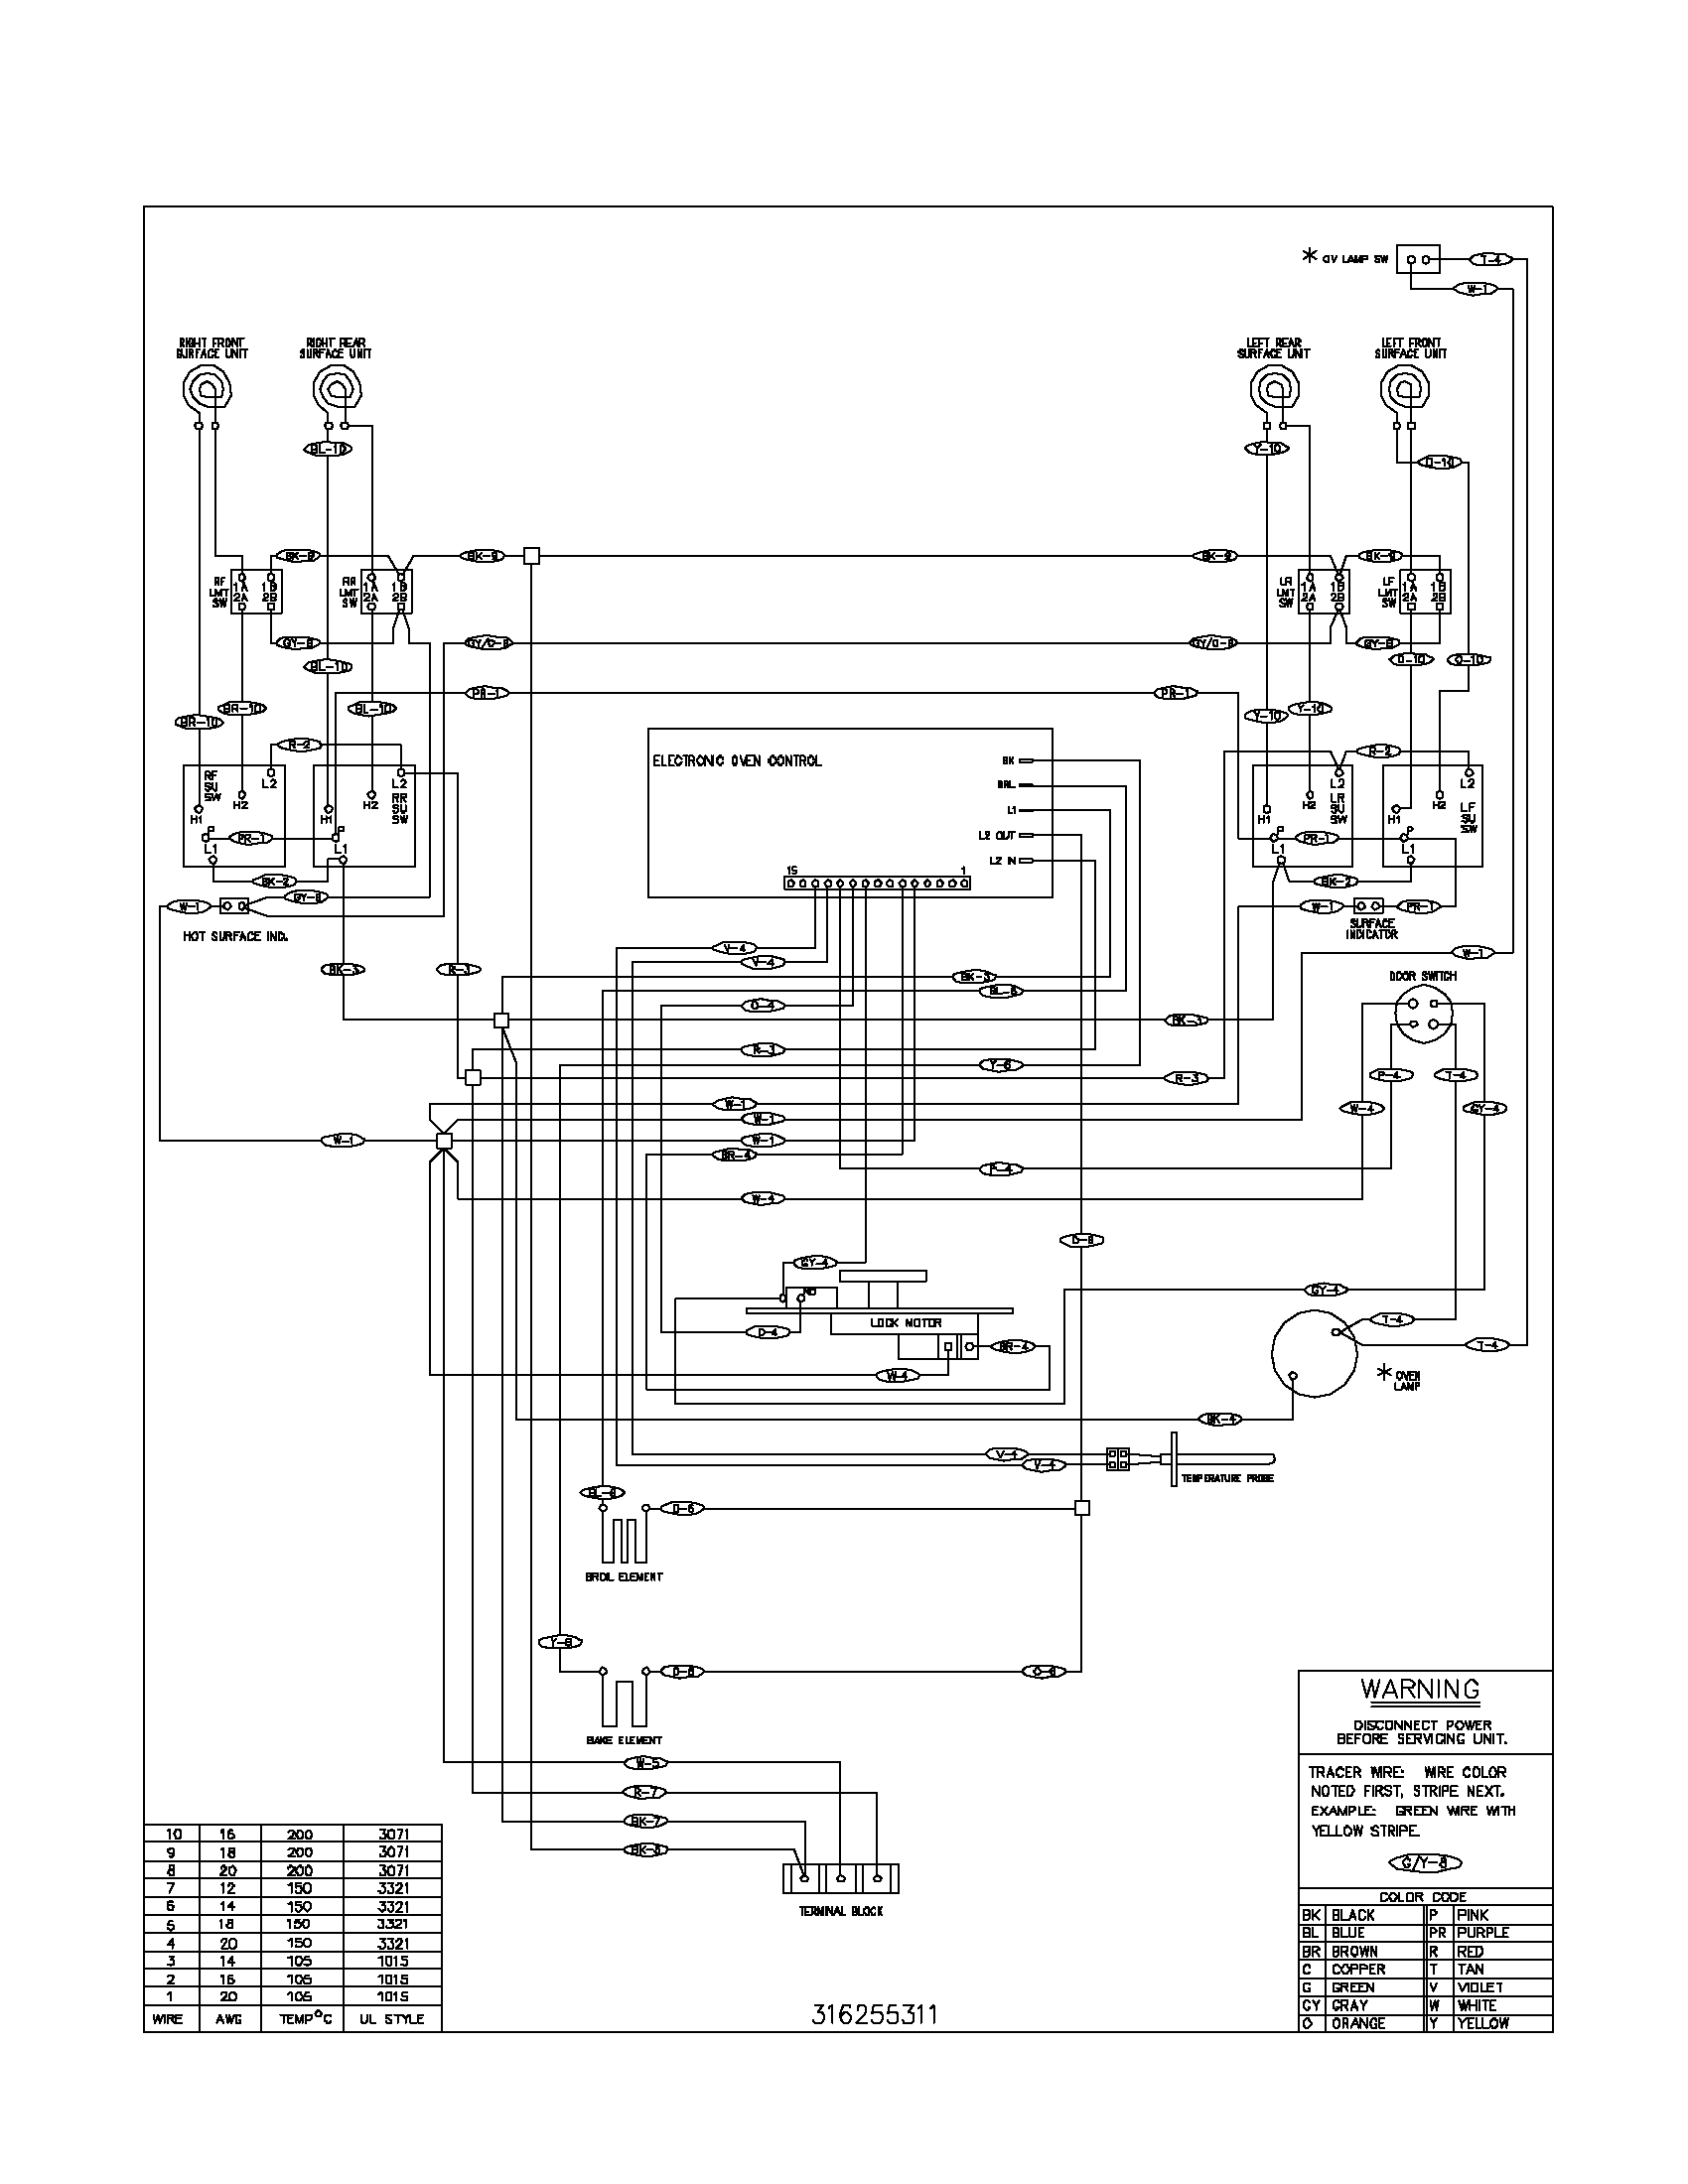 Unique Wiring Diagram Of Electric Cooker Diagram Diagramsample Diagramtemplate Wiringdiagram Diagramchart Worksheet Worksheettemplate